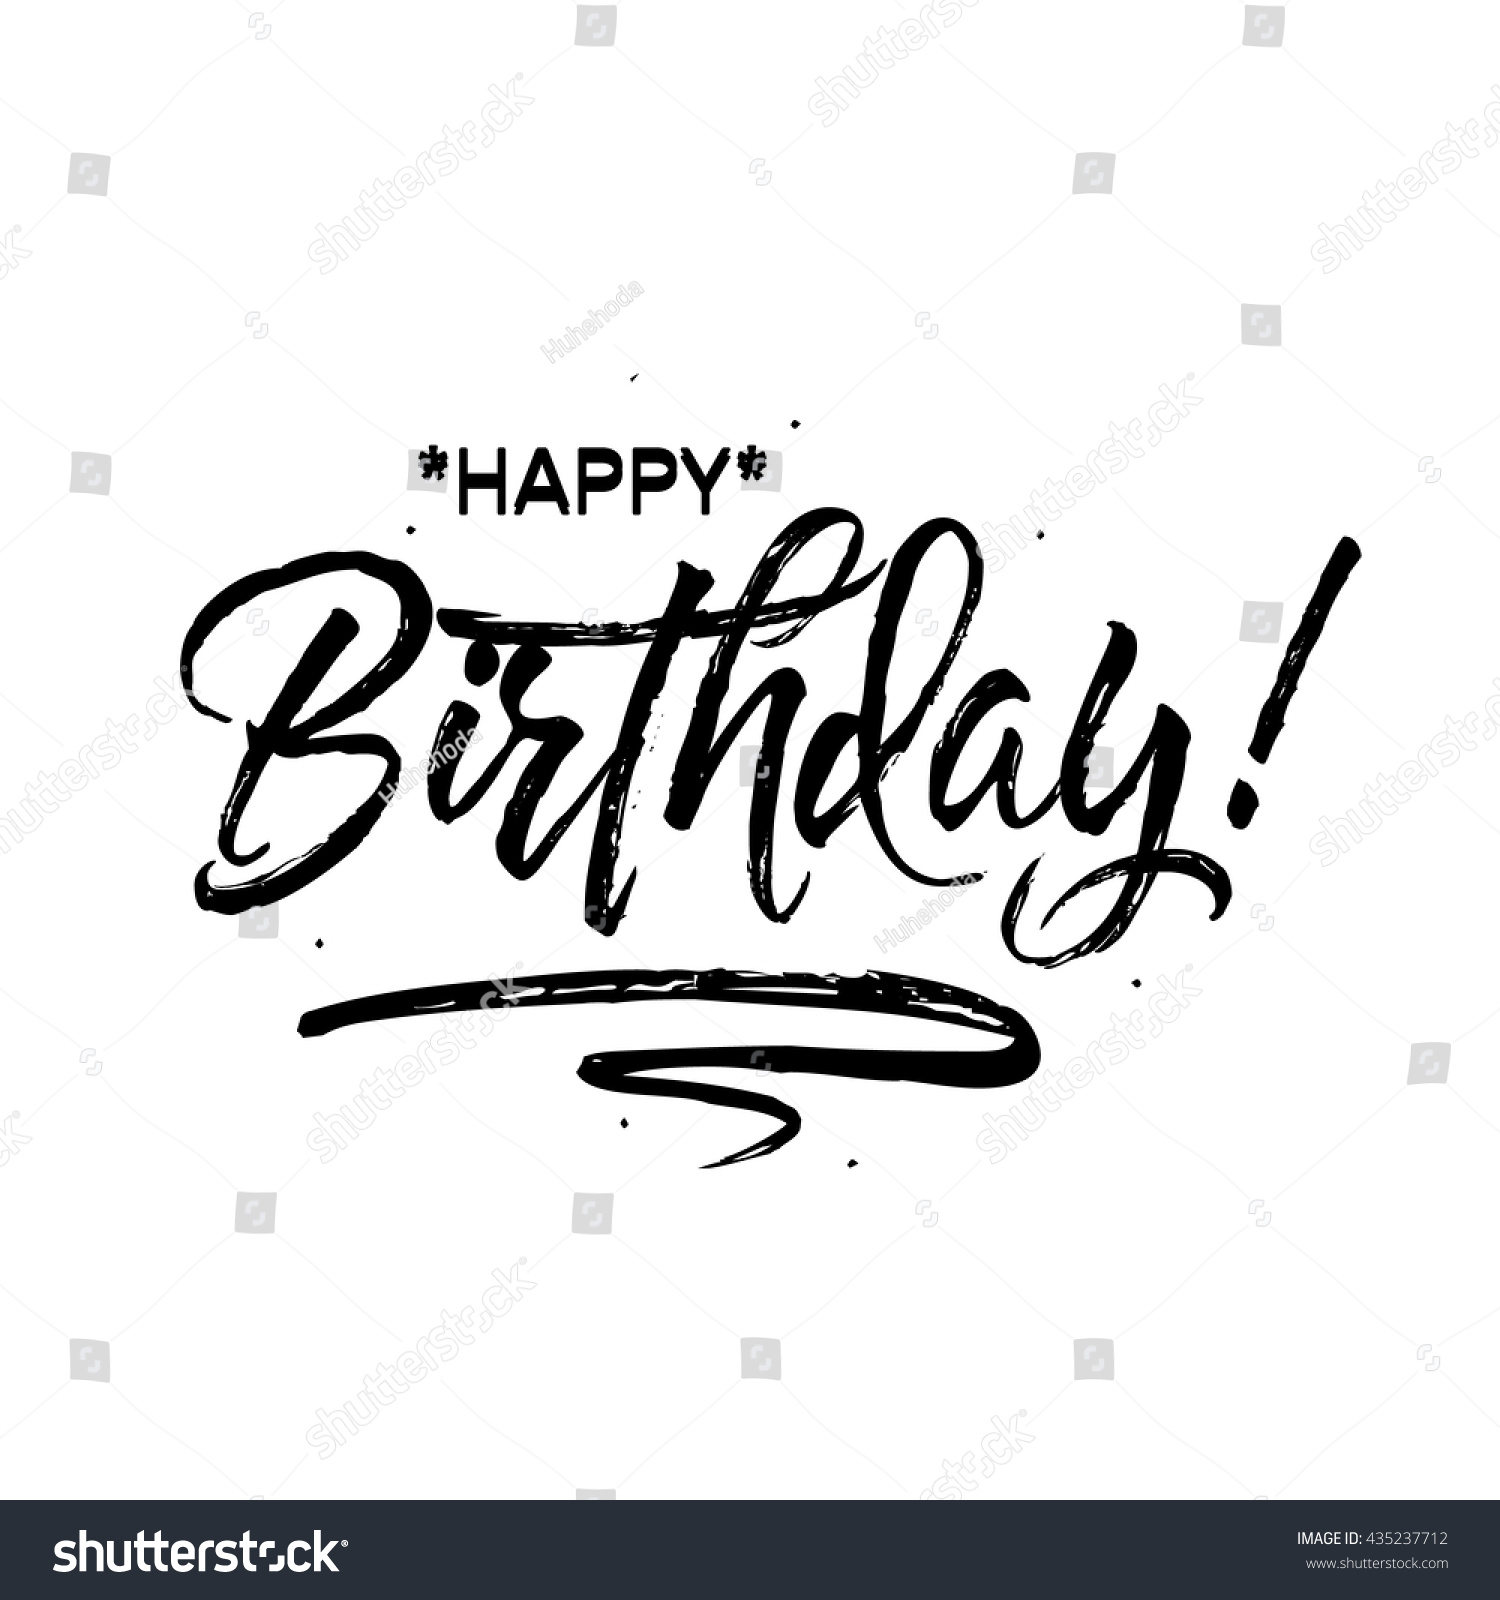 Happy Birthday Beautiful Greeting Card Poster Stock Vector